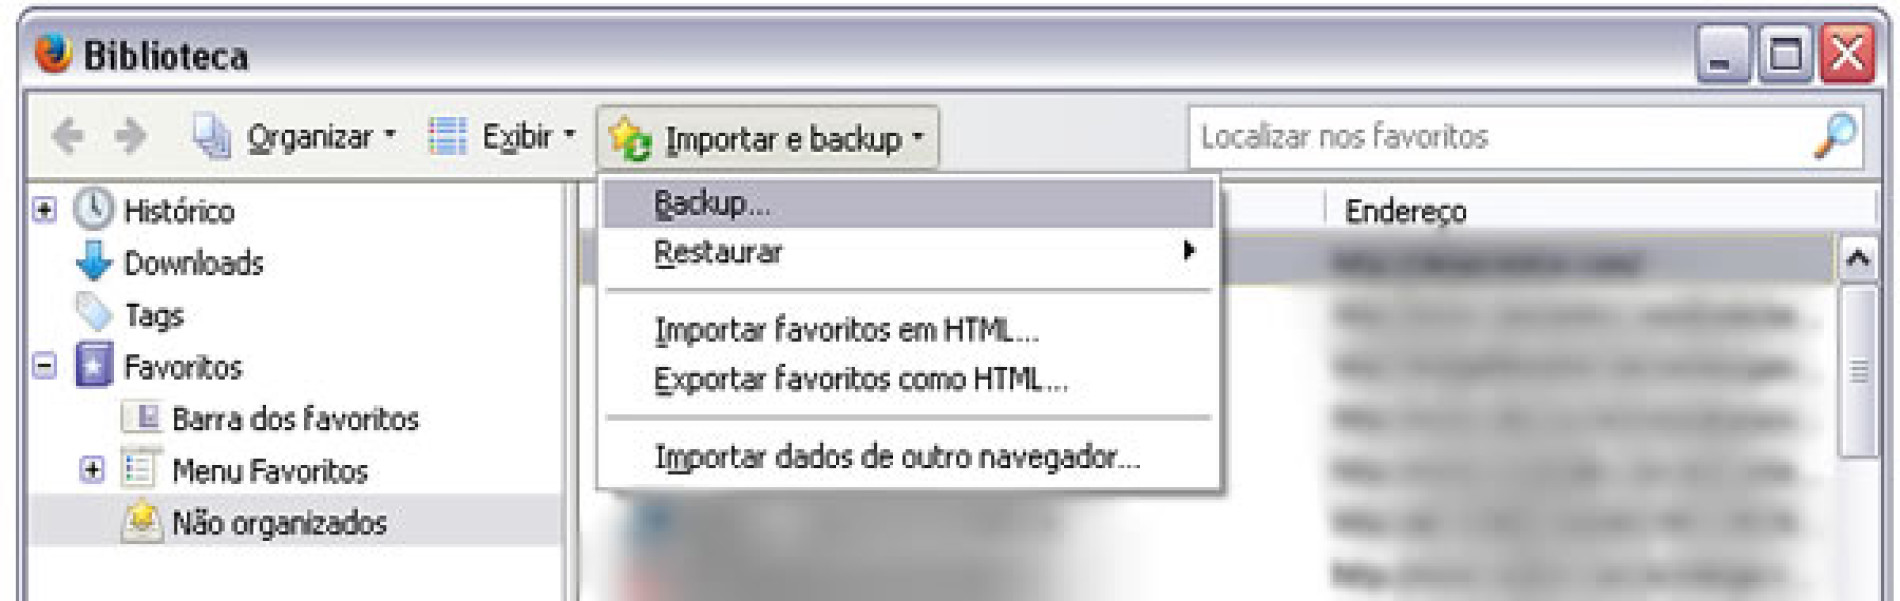 Como salvar e transferir meus favoritos do Firefox?